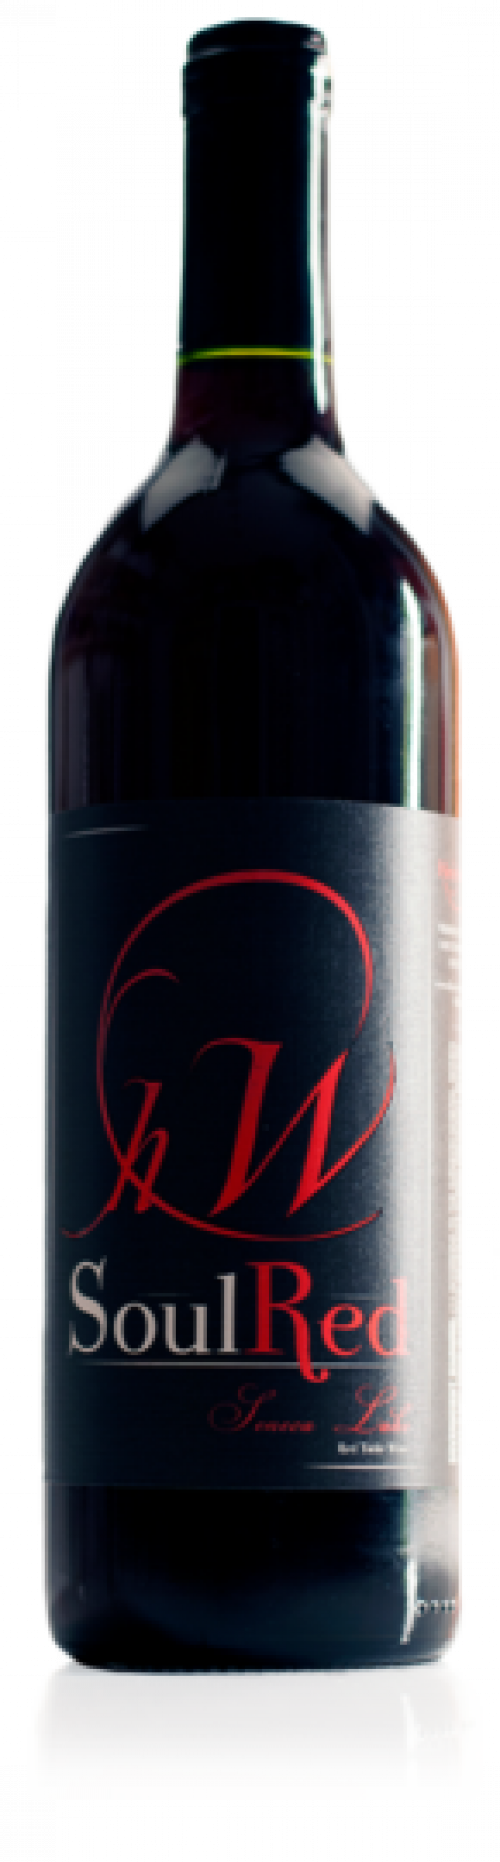 Hector Wine Company Soul Red 750ml NV